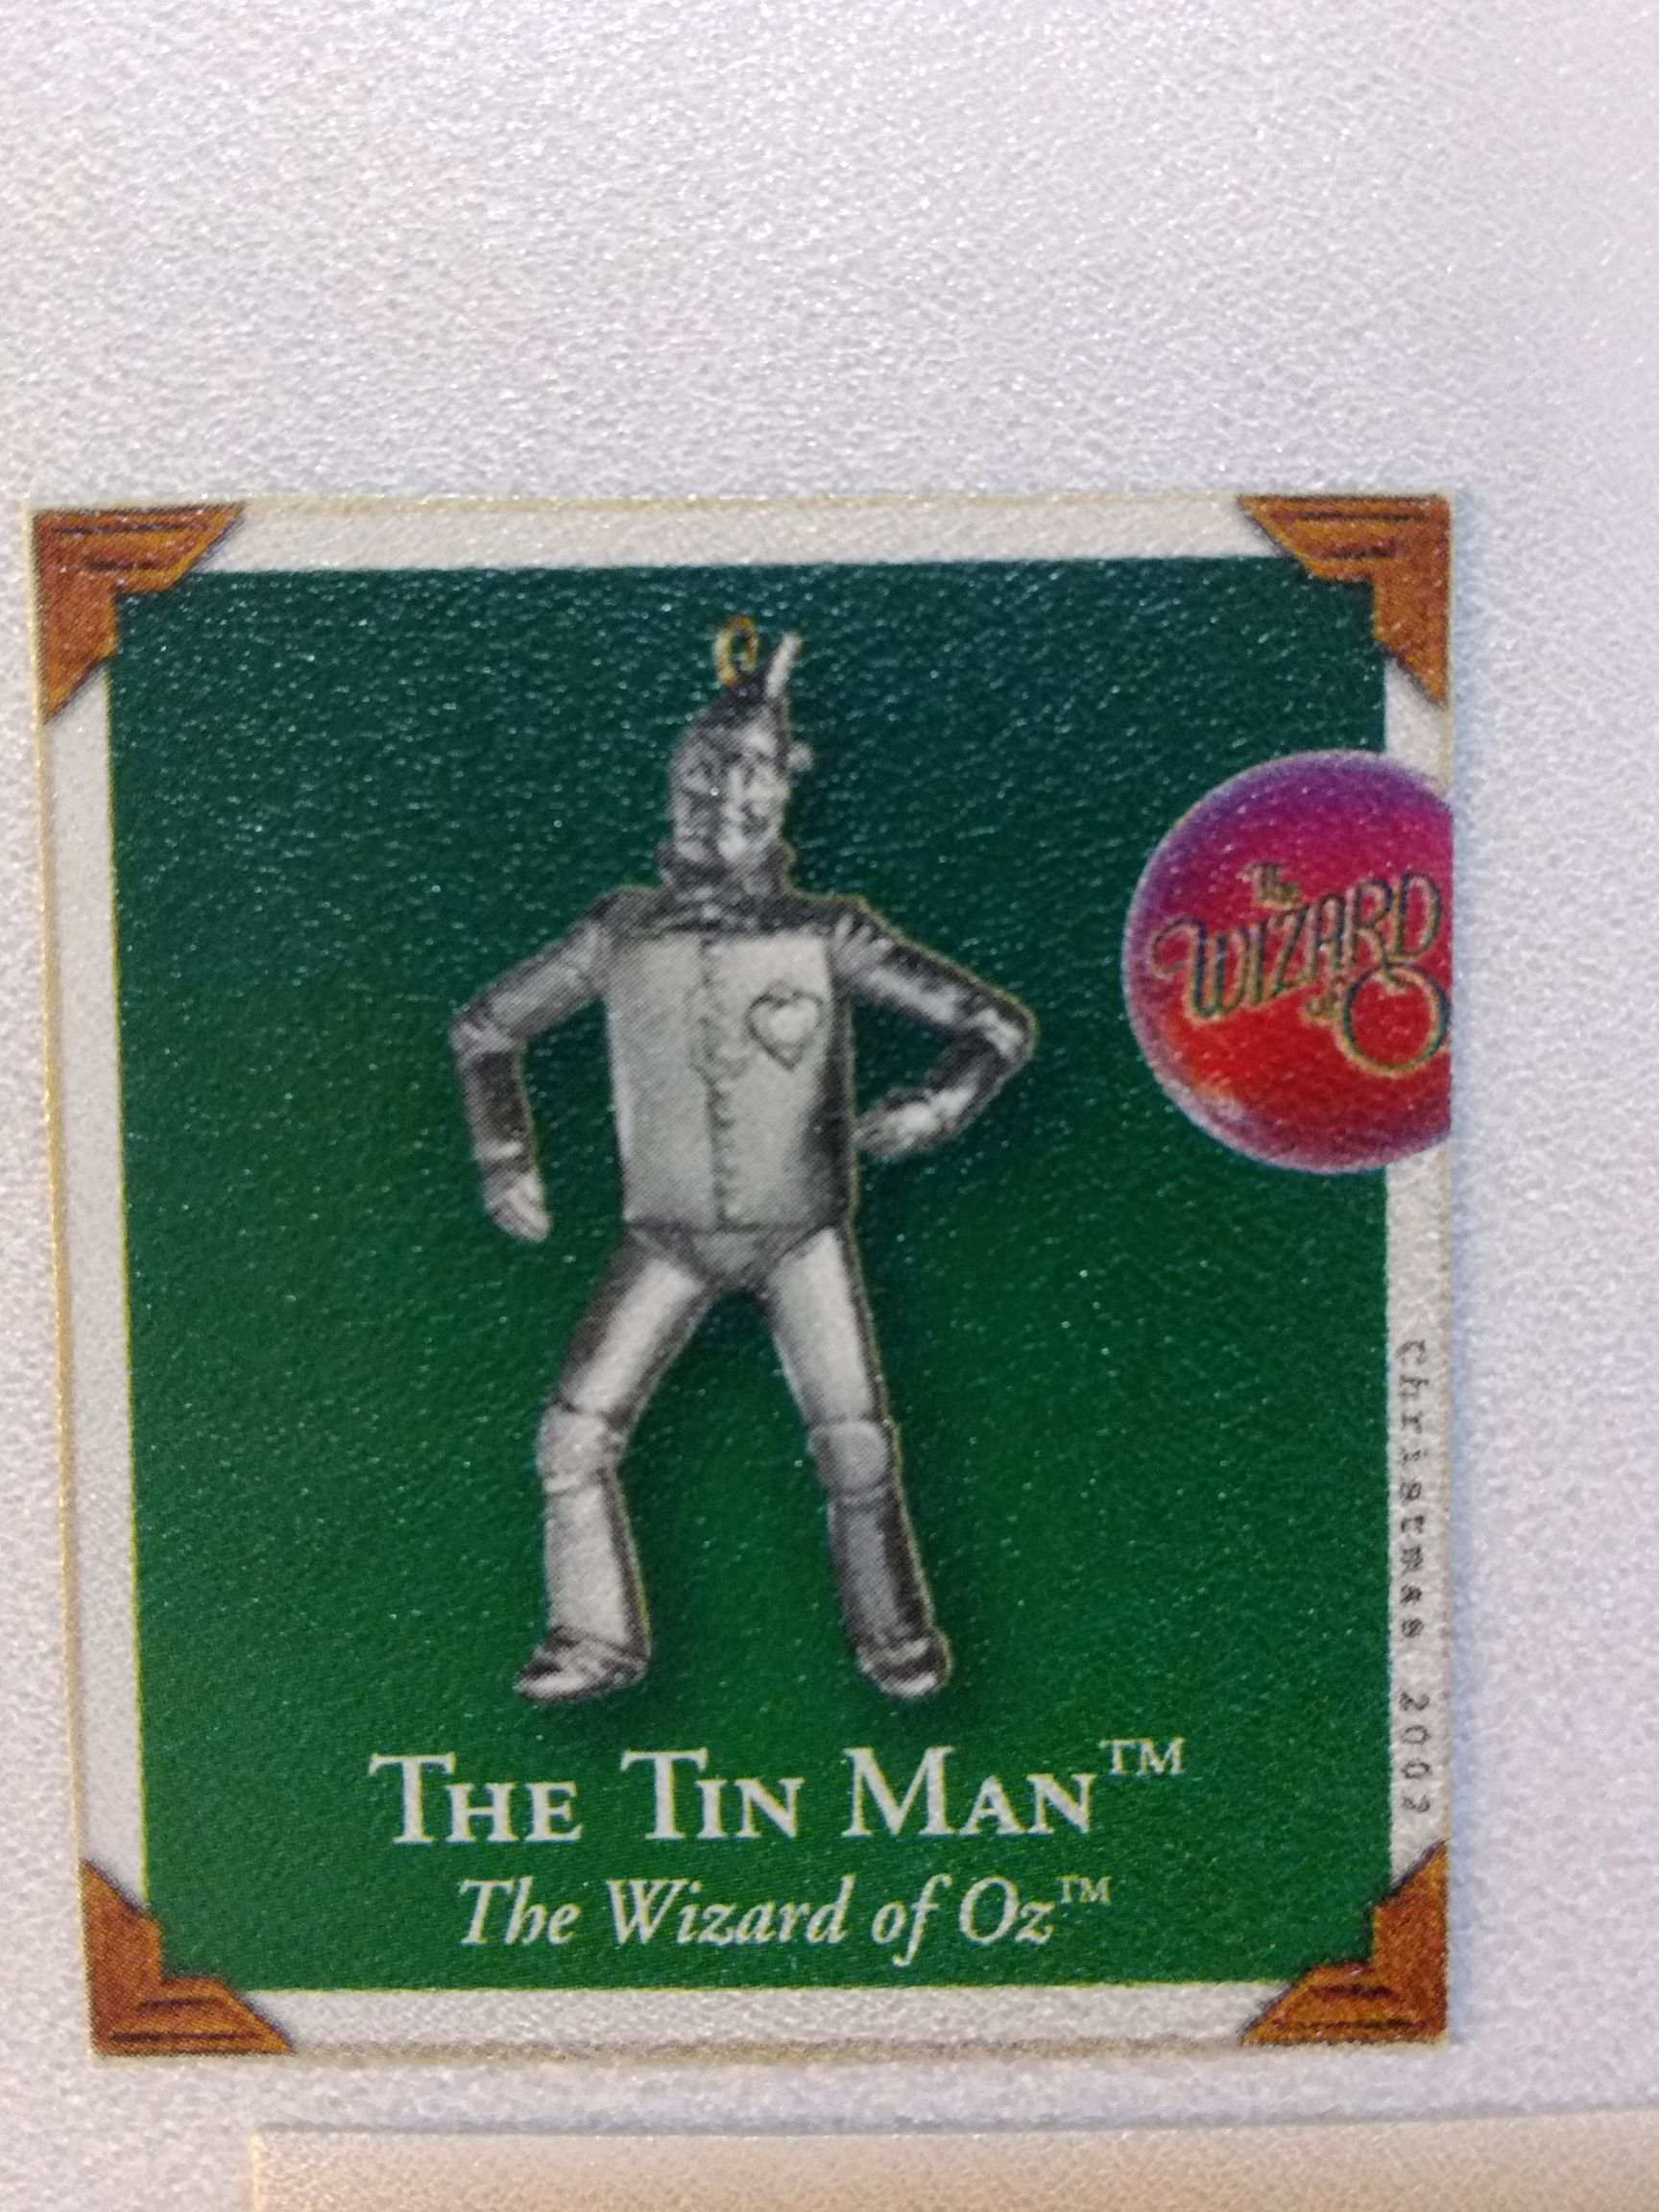 Z - Wizard Of Oz -The Tin Man's Heart Ornament - Hallmark front image (front cover)